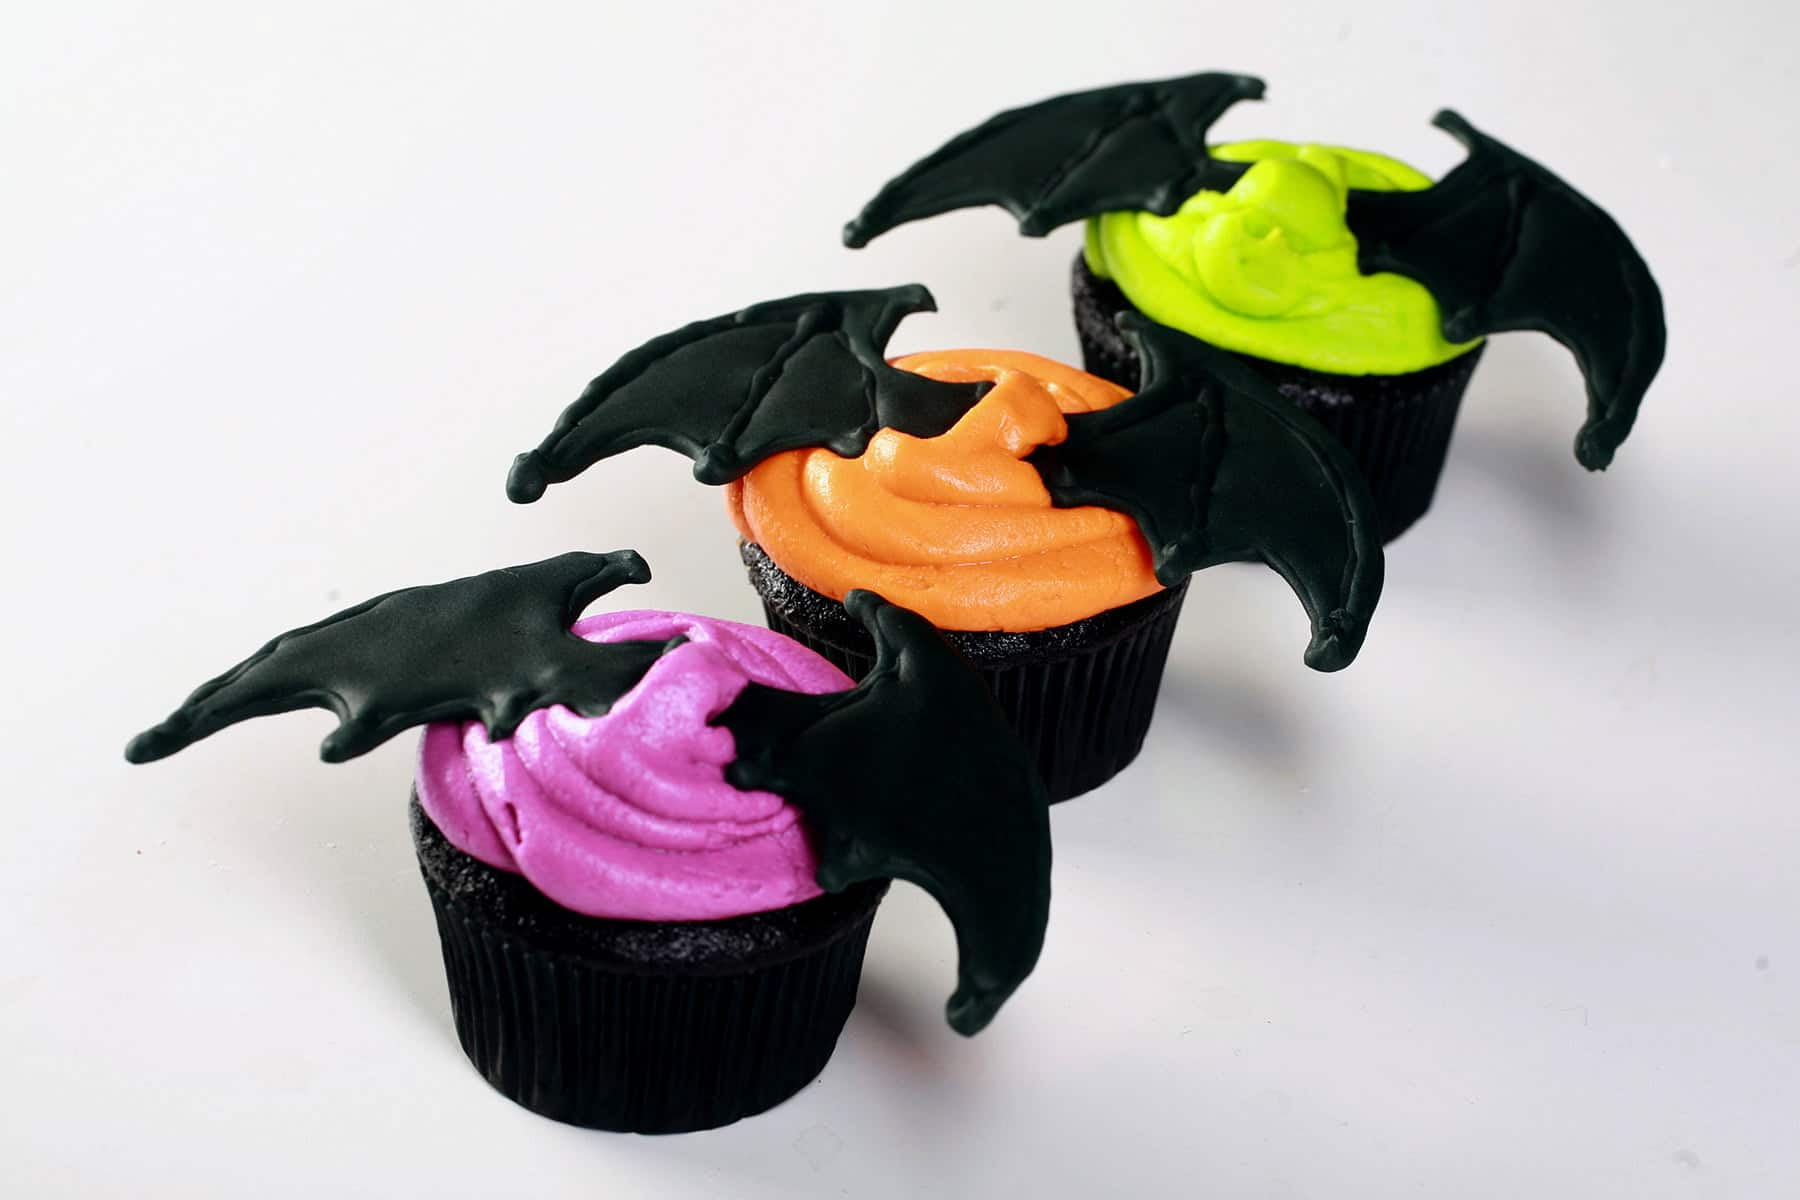 2 Black velvet cupcakes, frosted with bright icing - electric purple, lime green, and orange - and topped with a 3D pair of royal icing bat wings.